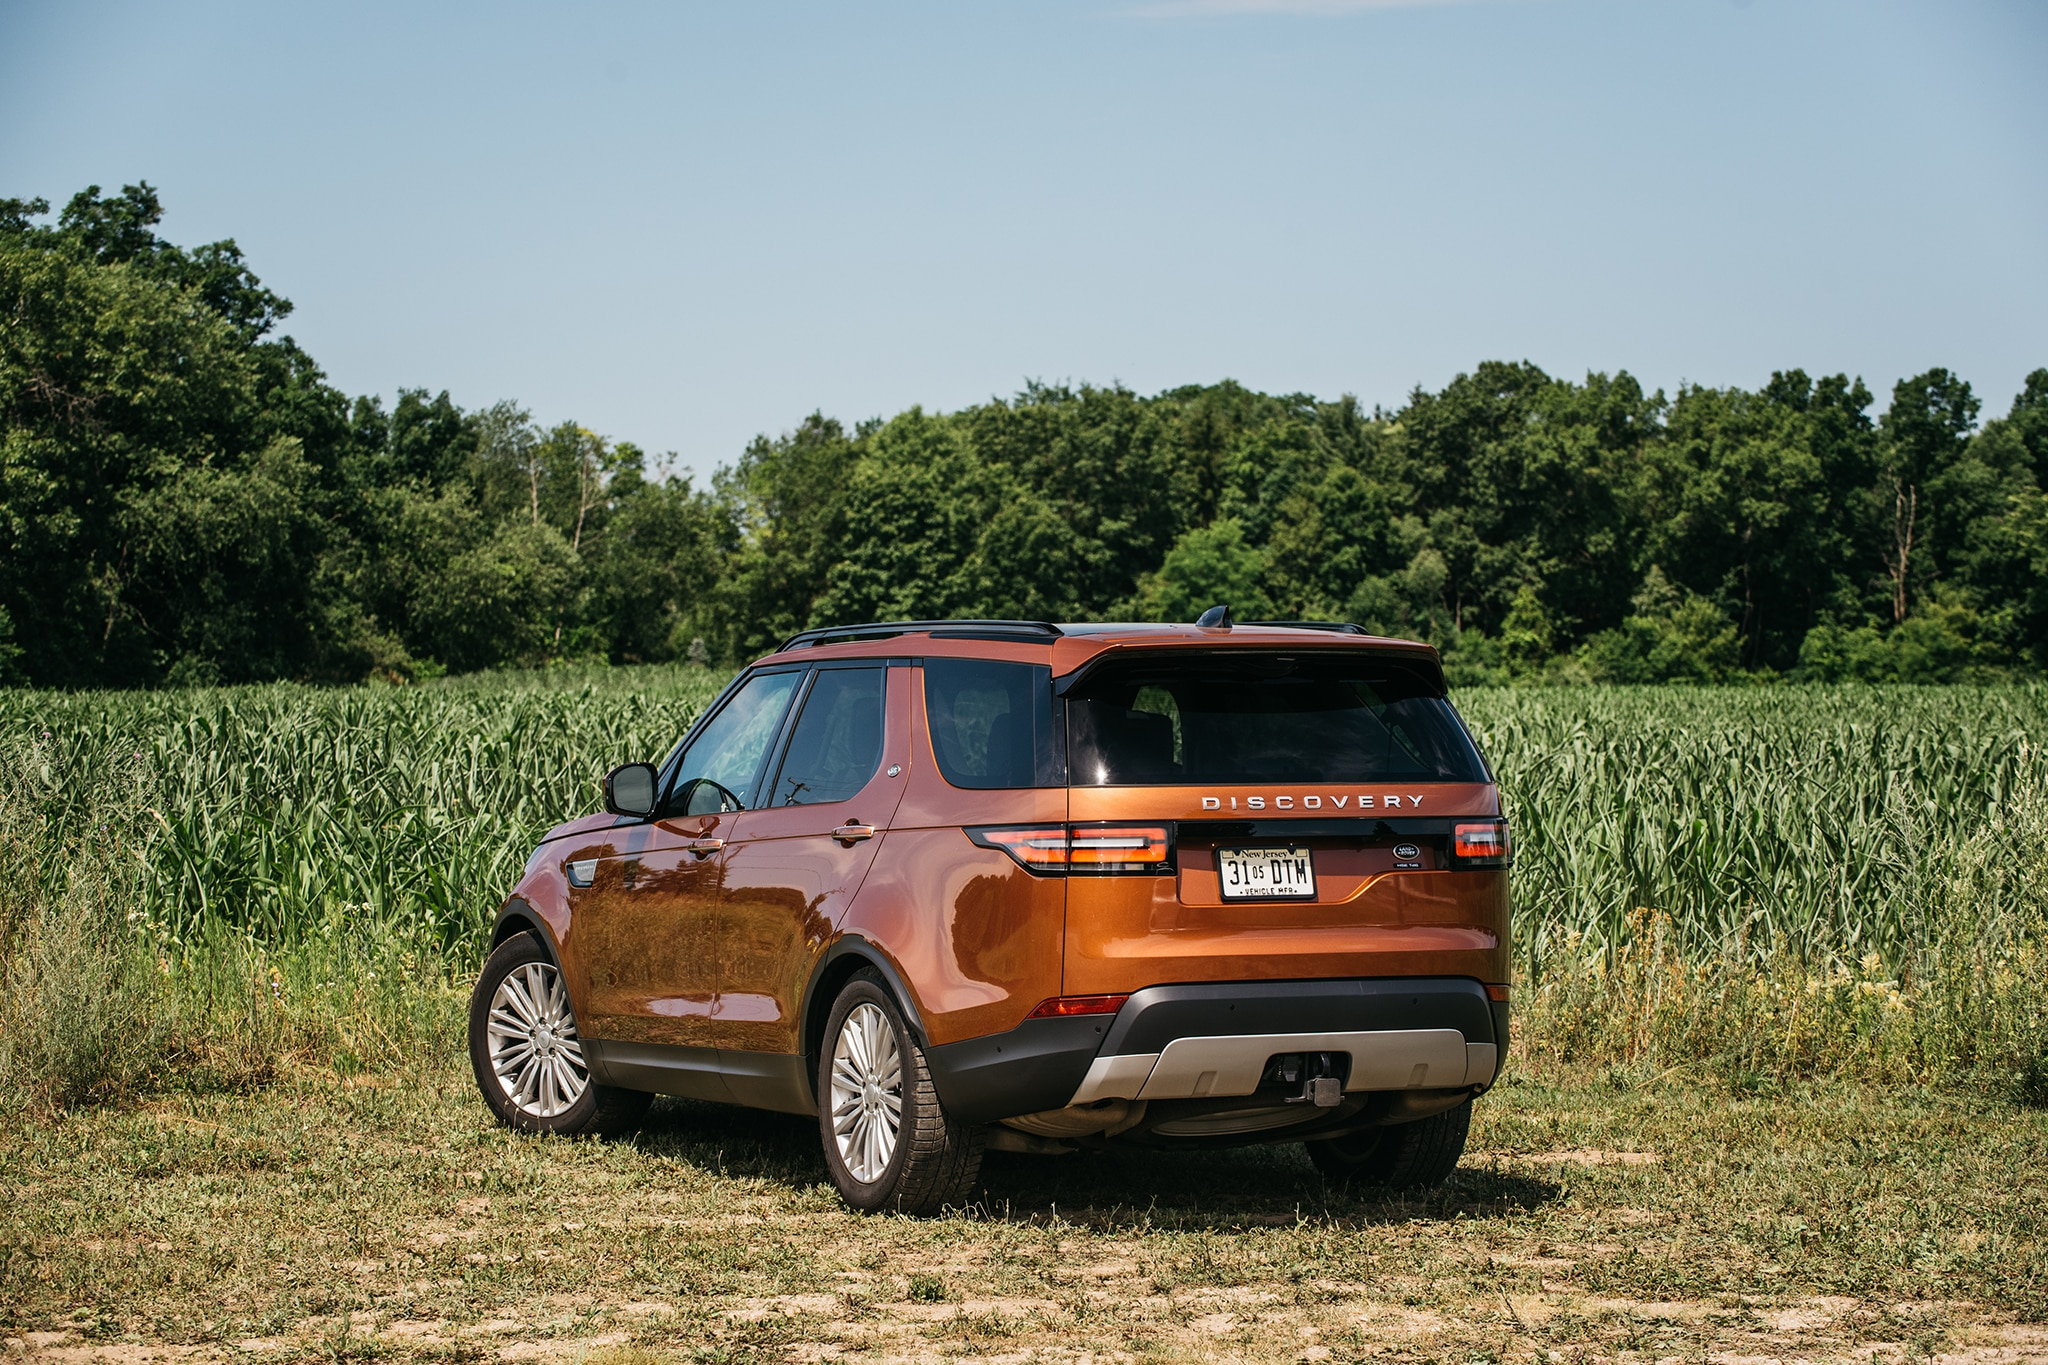 2017 Land Rover Discovery Td6 HSE Rear Three Quarter